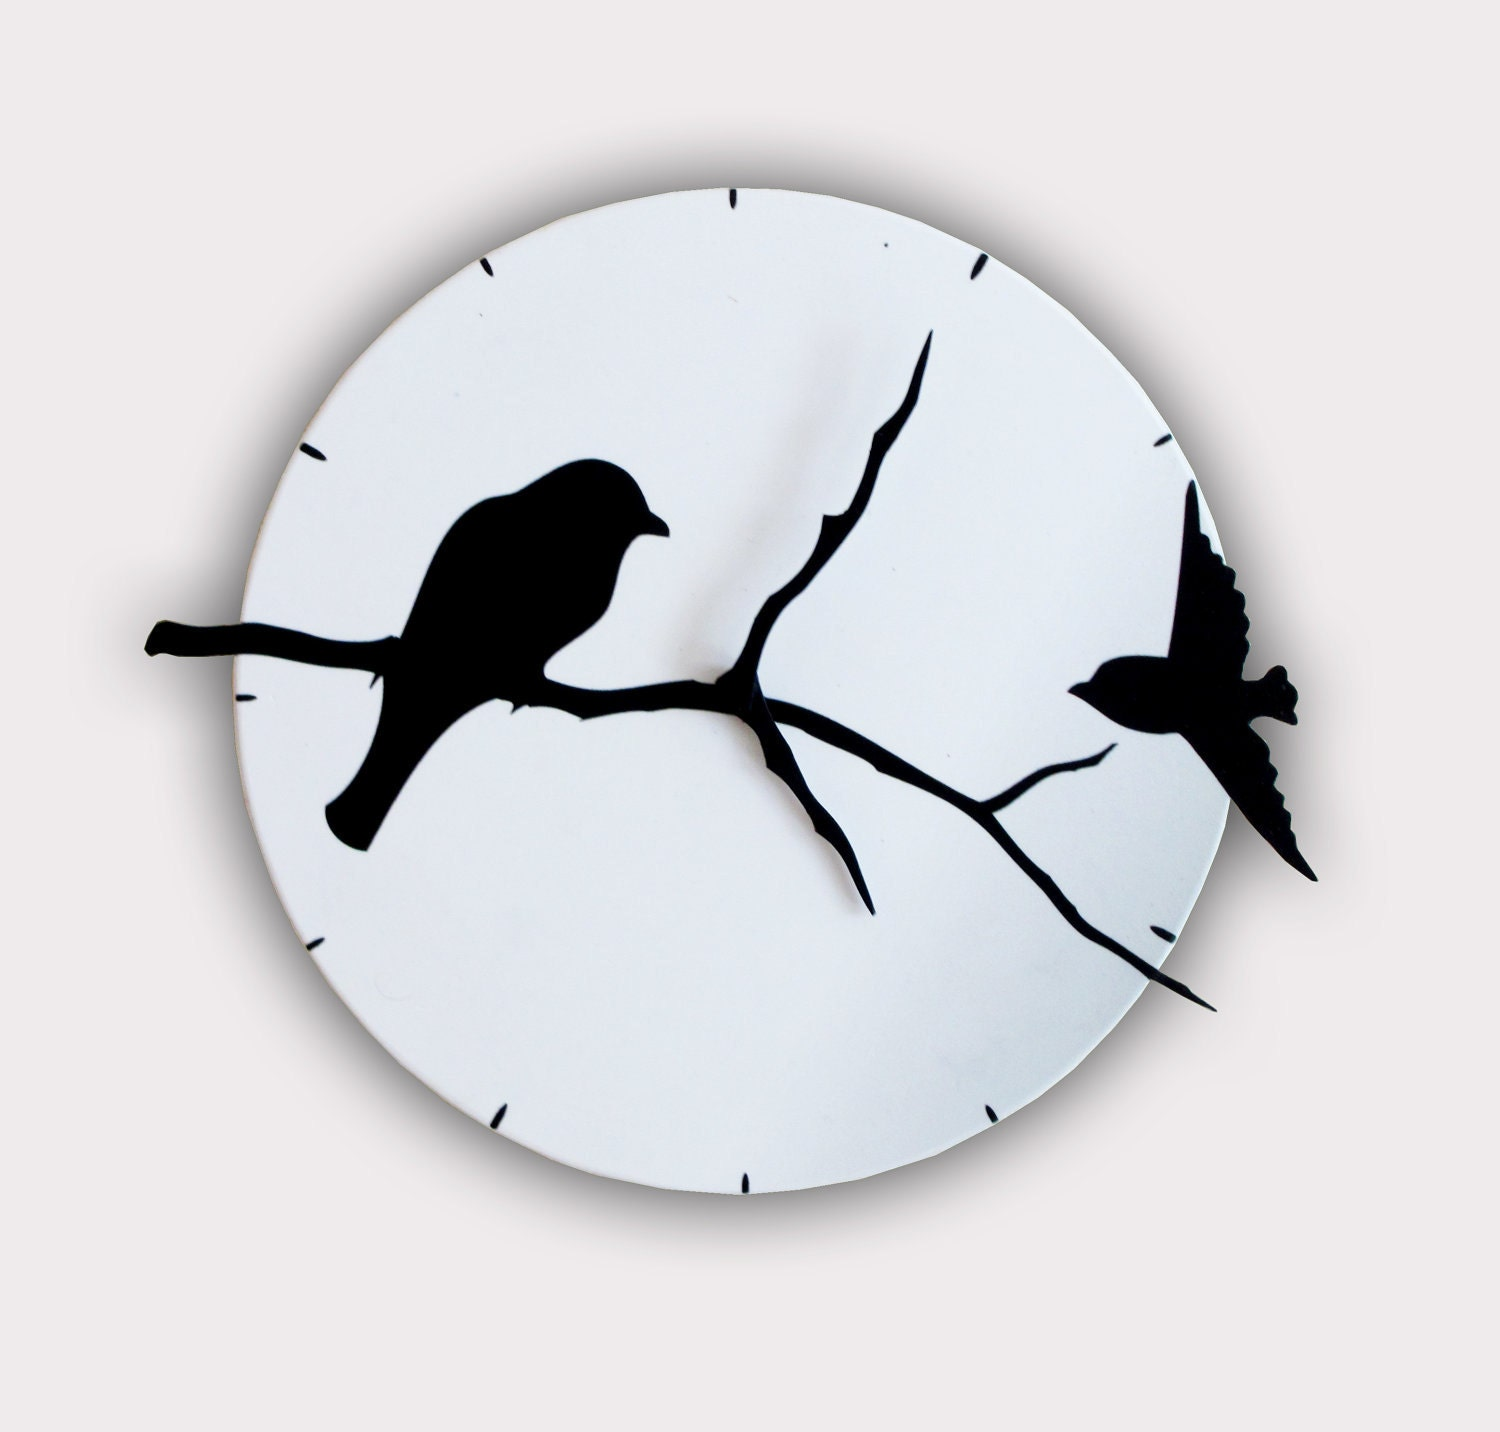 Birds on Tree Shadows Wall Clock - walldecoration